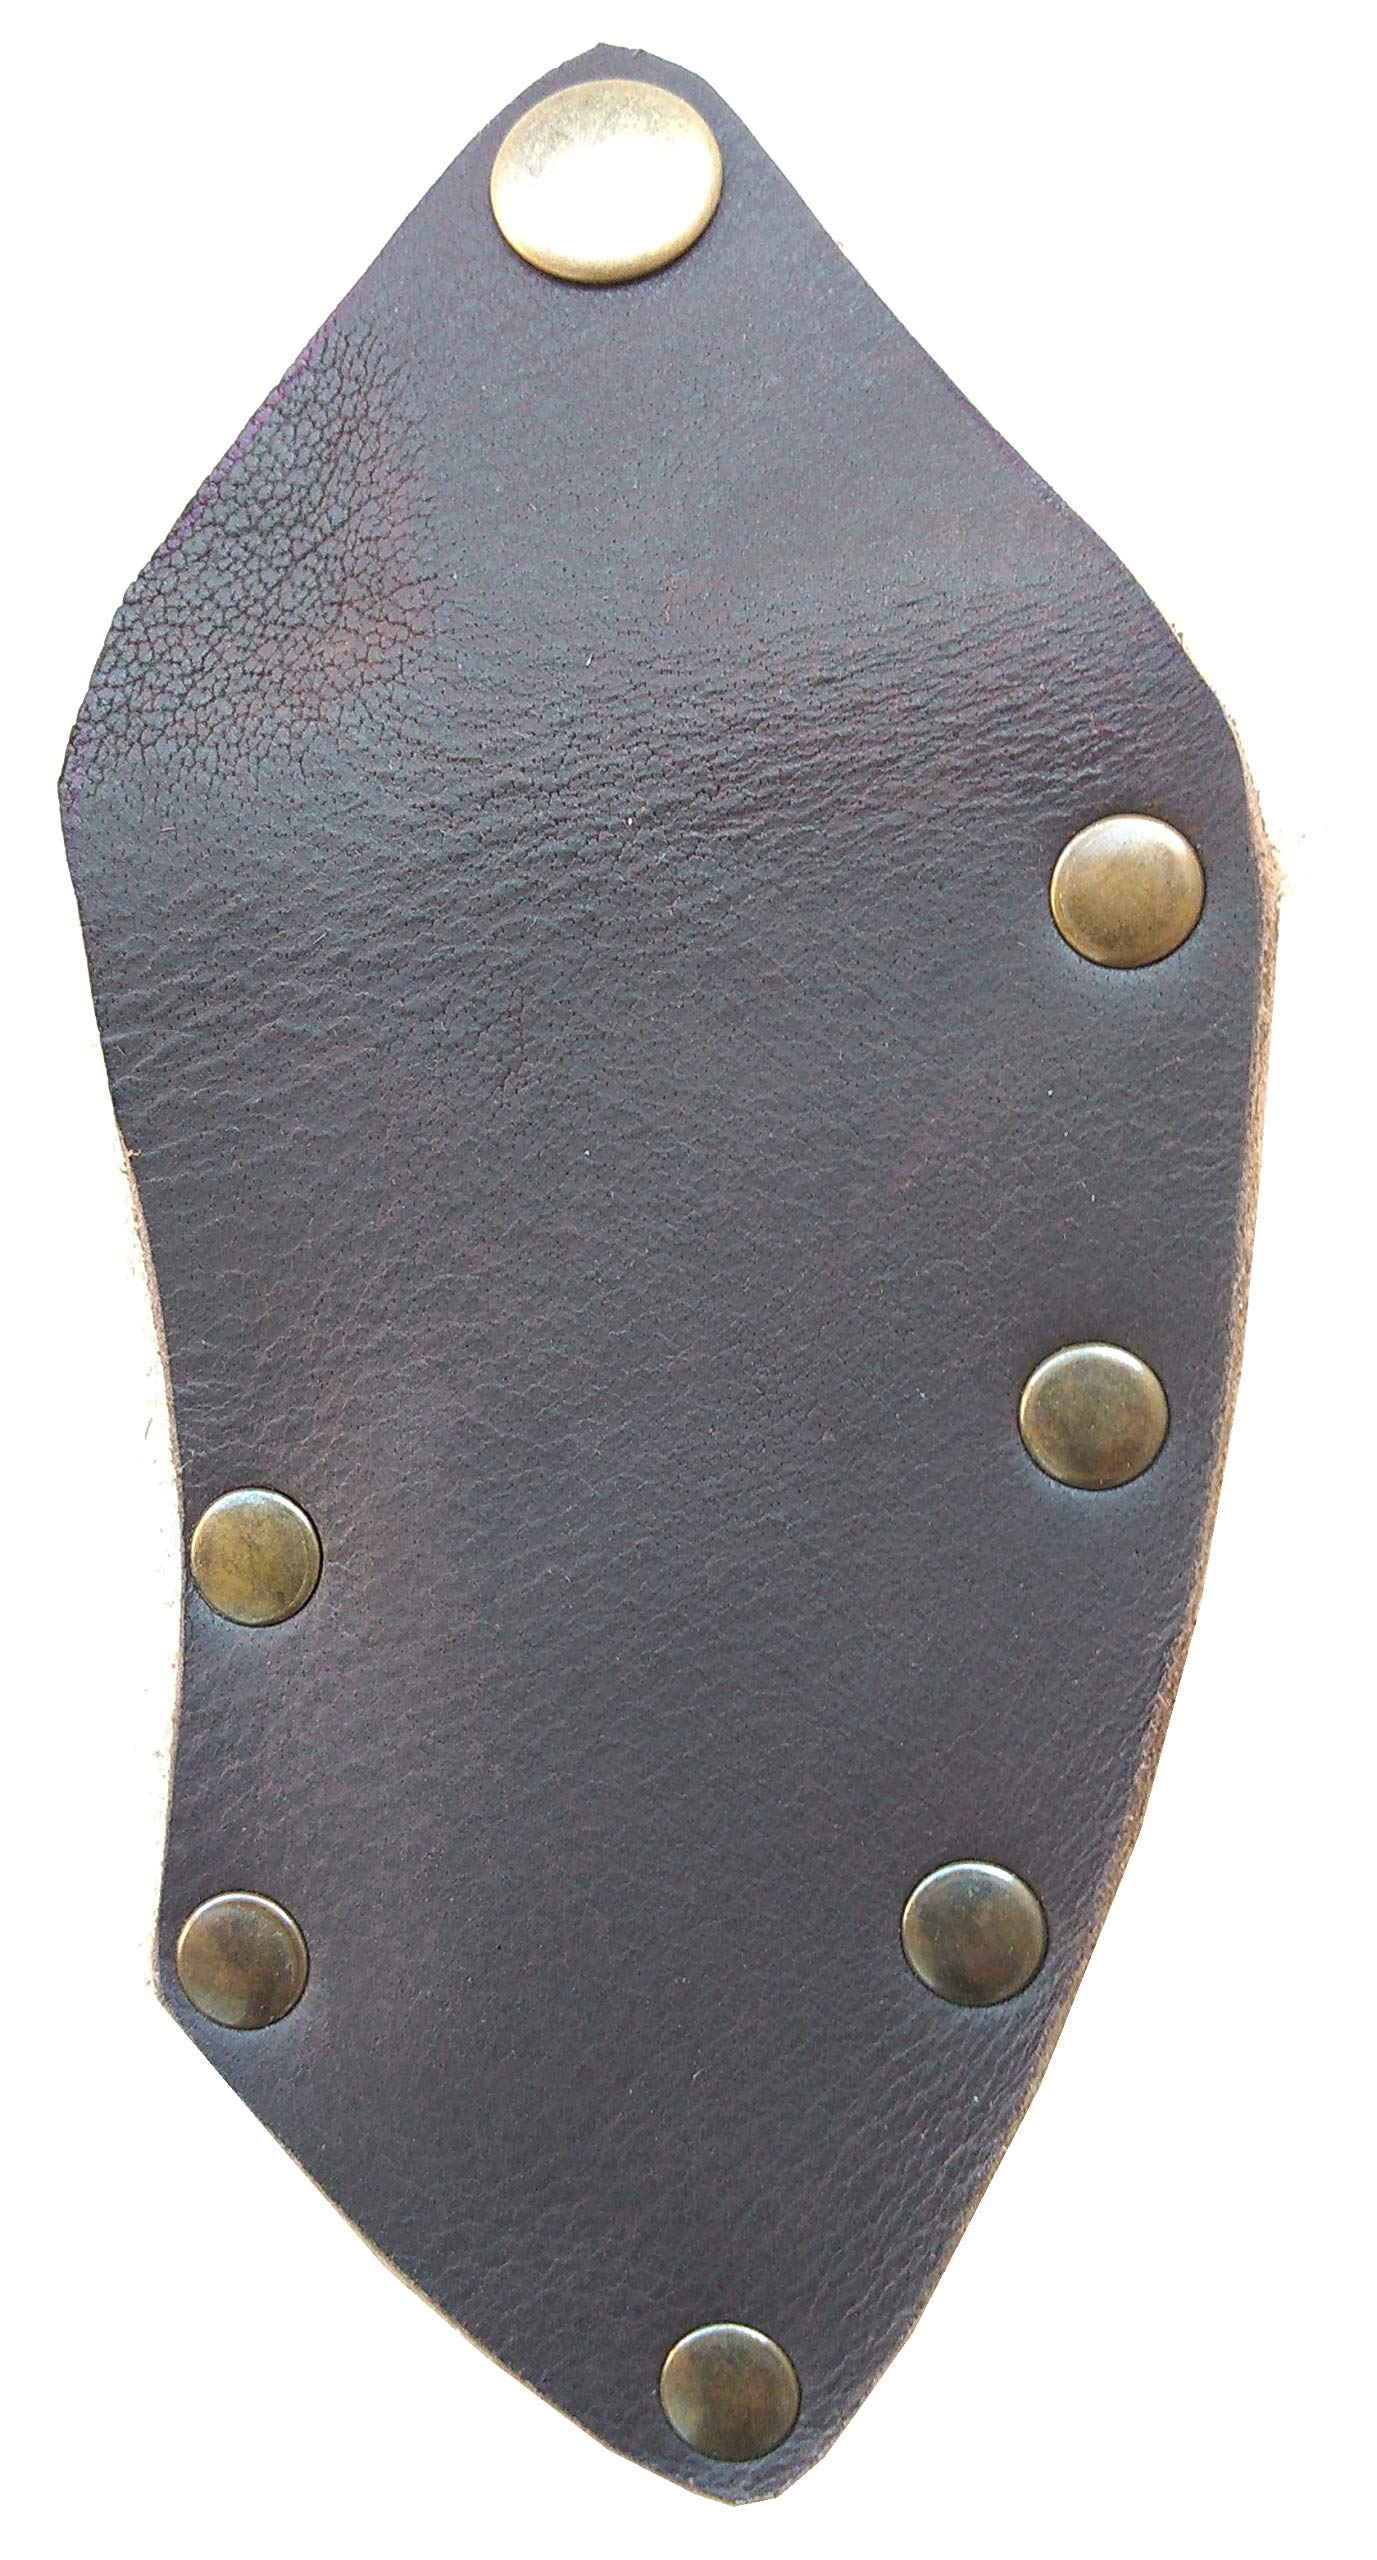 Leather sheath for the small axe by mapsyst (Image #3)